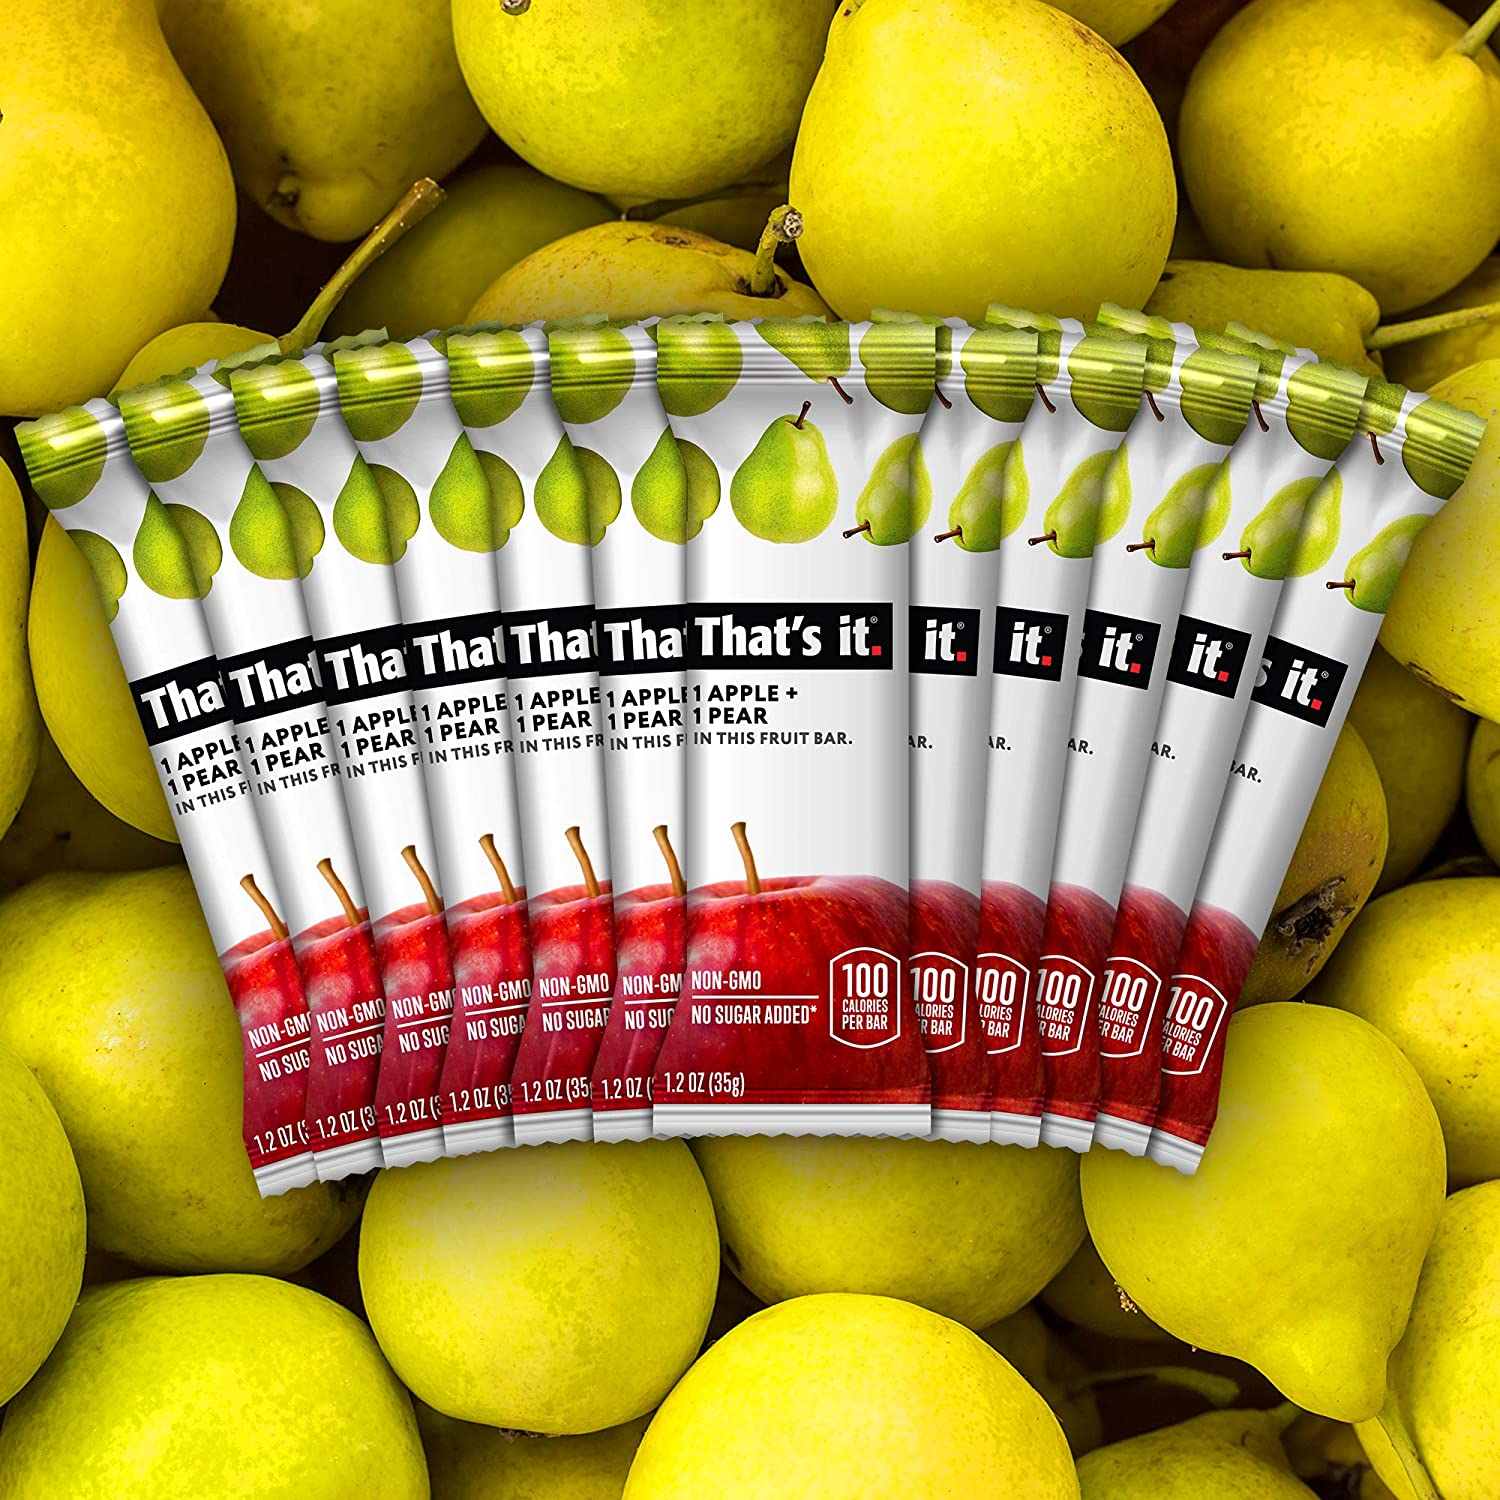 That's it. Apples + Pear 100% Natural Real Fruit Bar, Best High Fiber Vegan, Gluten Free Healthy Snack, Paleo for Children & Adults, Non GMO Sugar-Free, No preservatives Energy Food (Pack of 12)